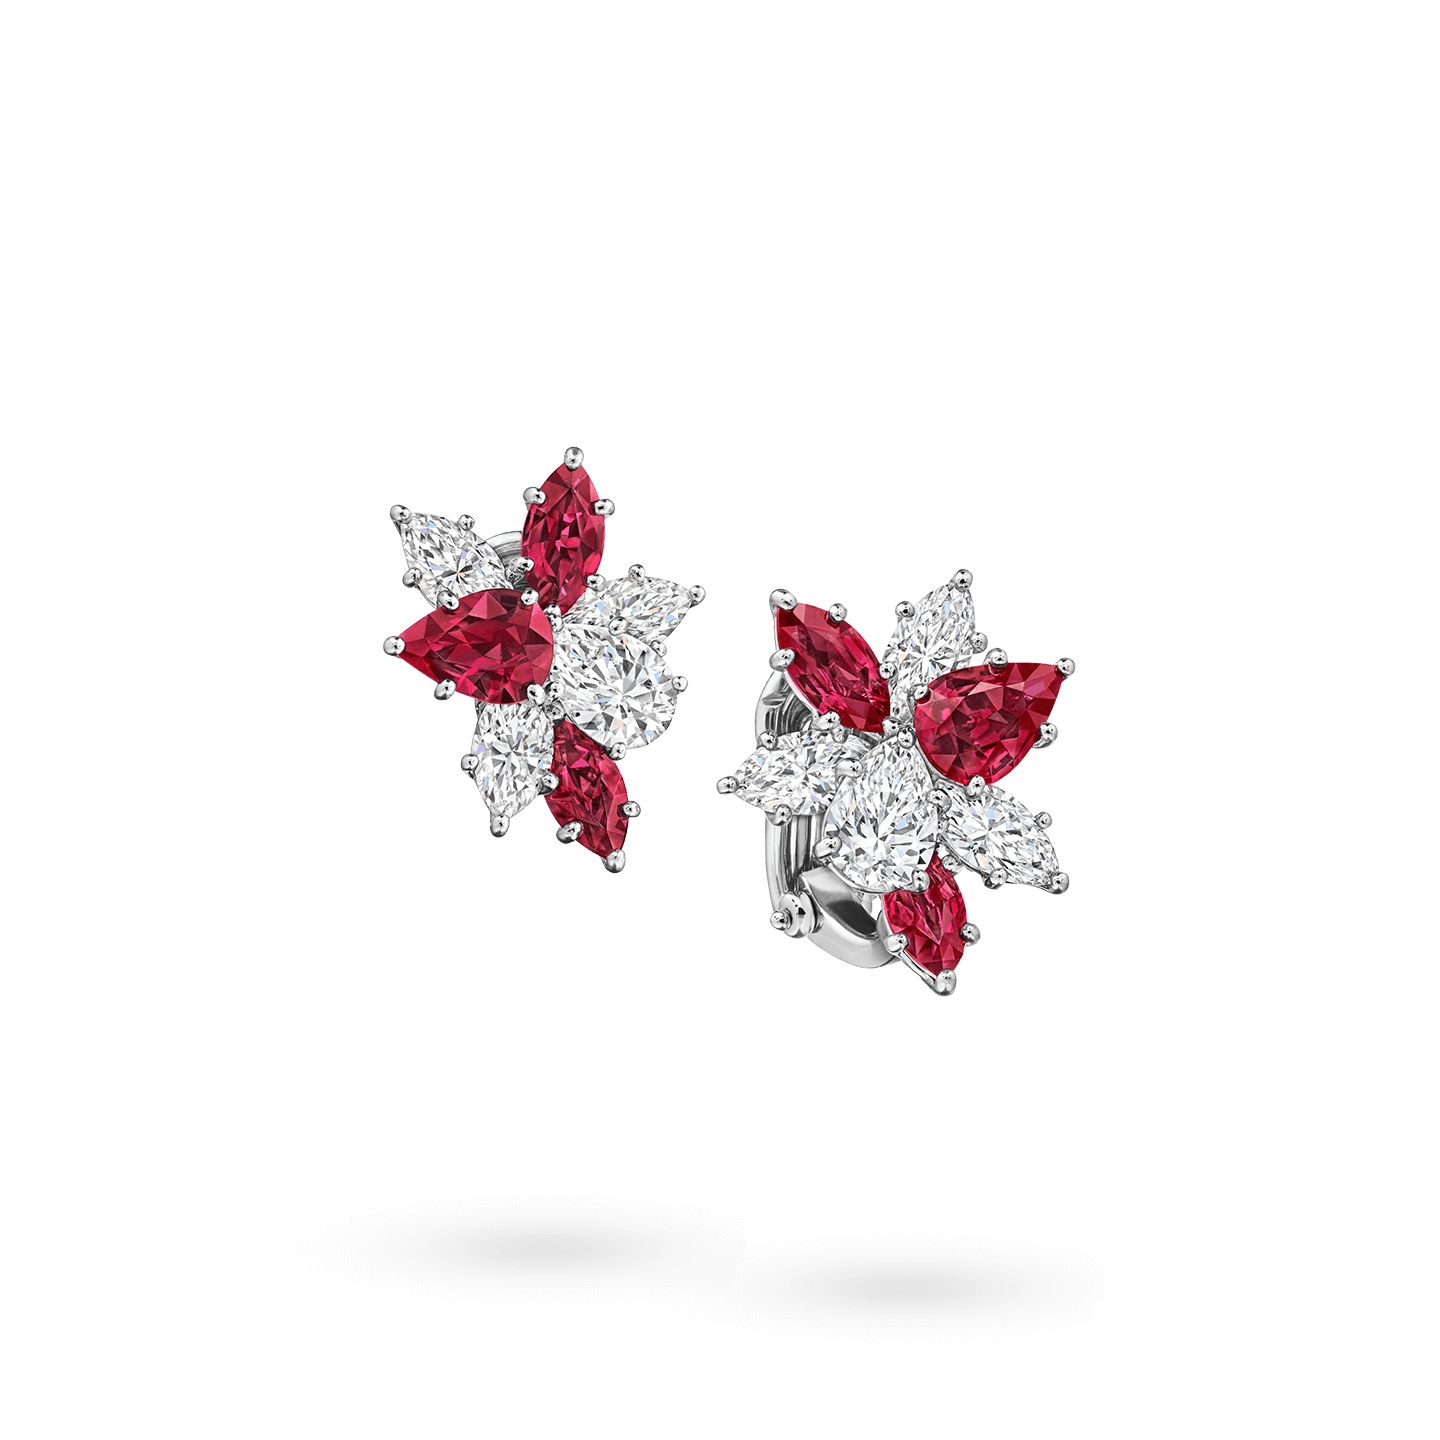 Winston Cluster Ruby and Diamond Earrings, Product Image 2